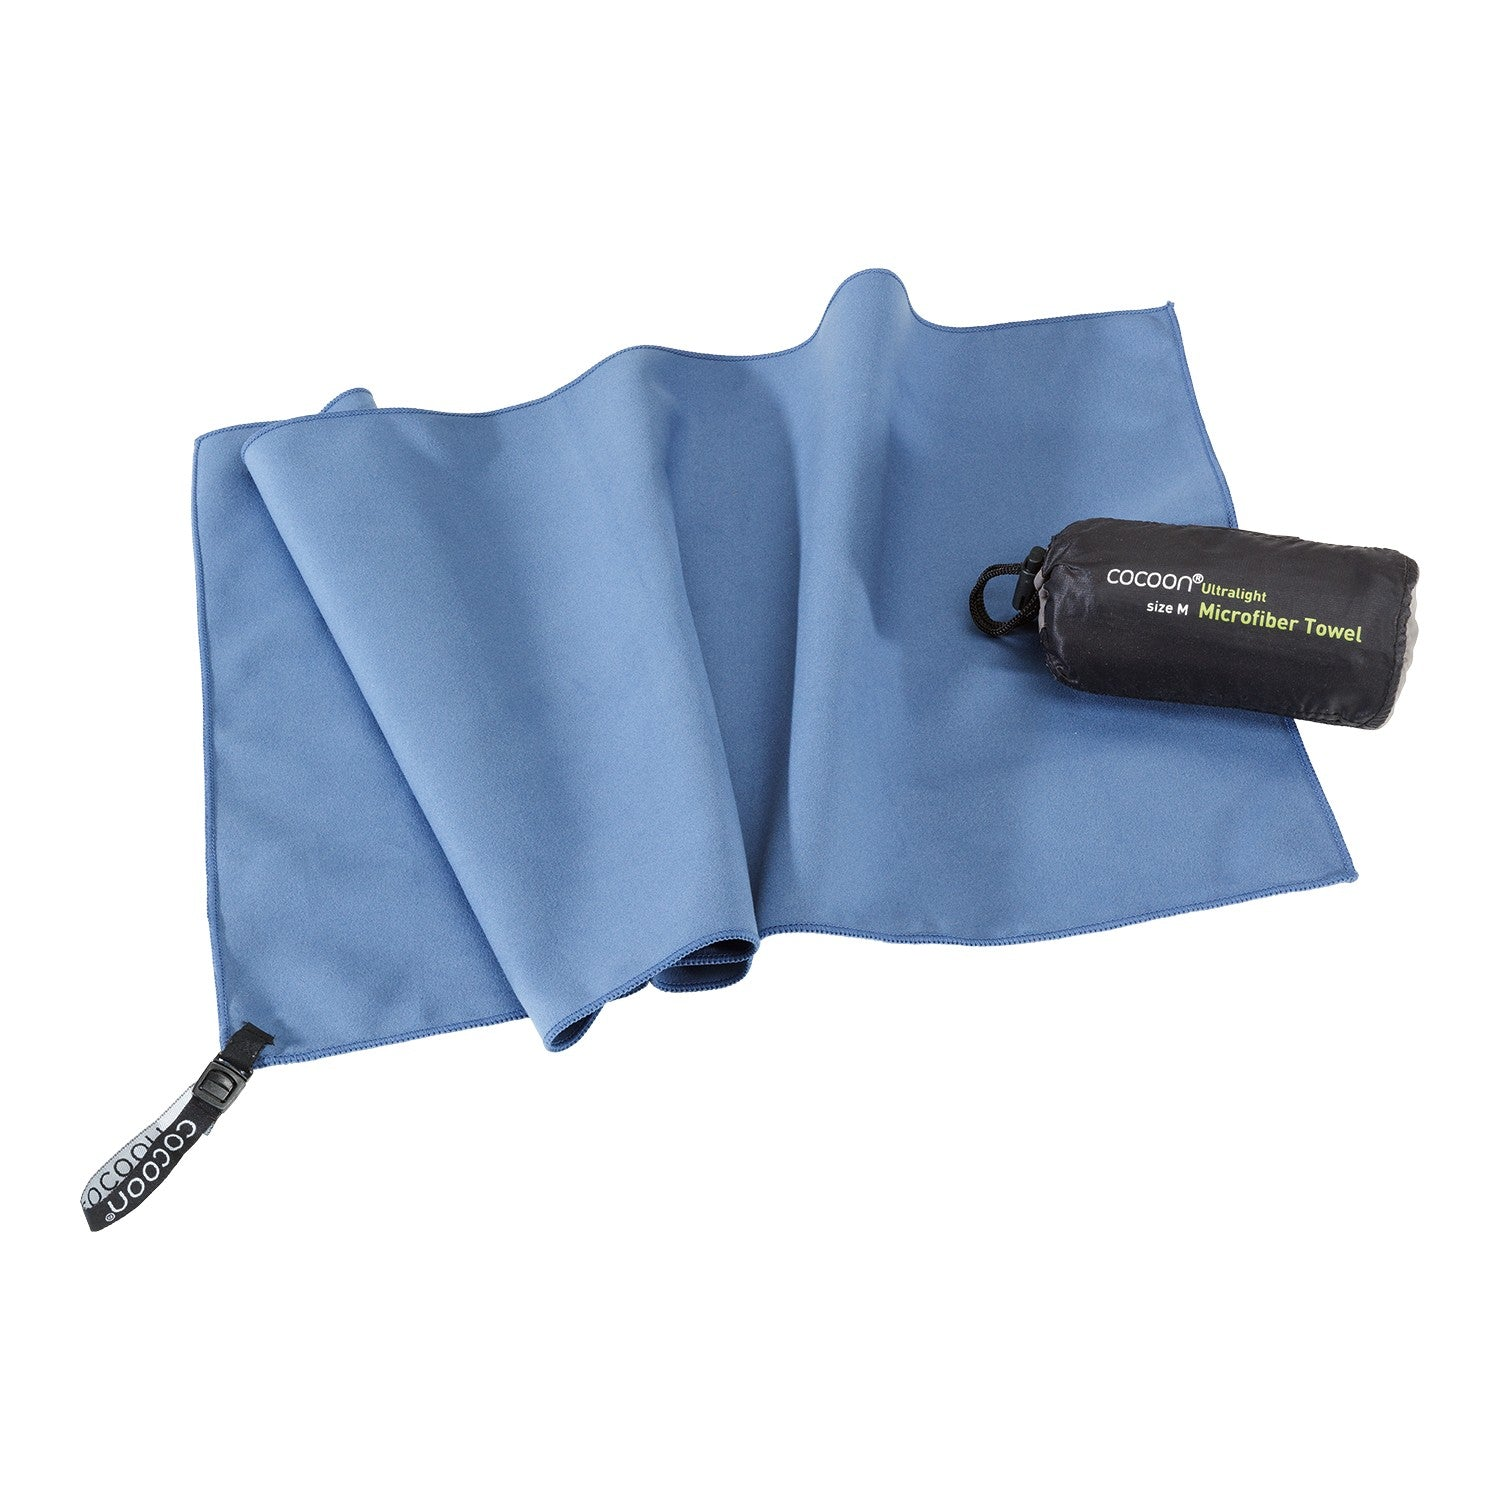 Cocoon Ultralight Microfiber Towel XL